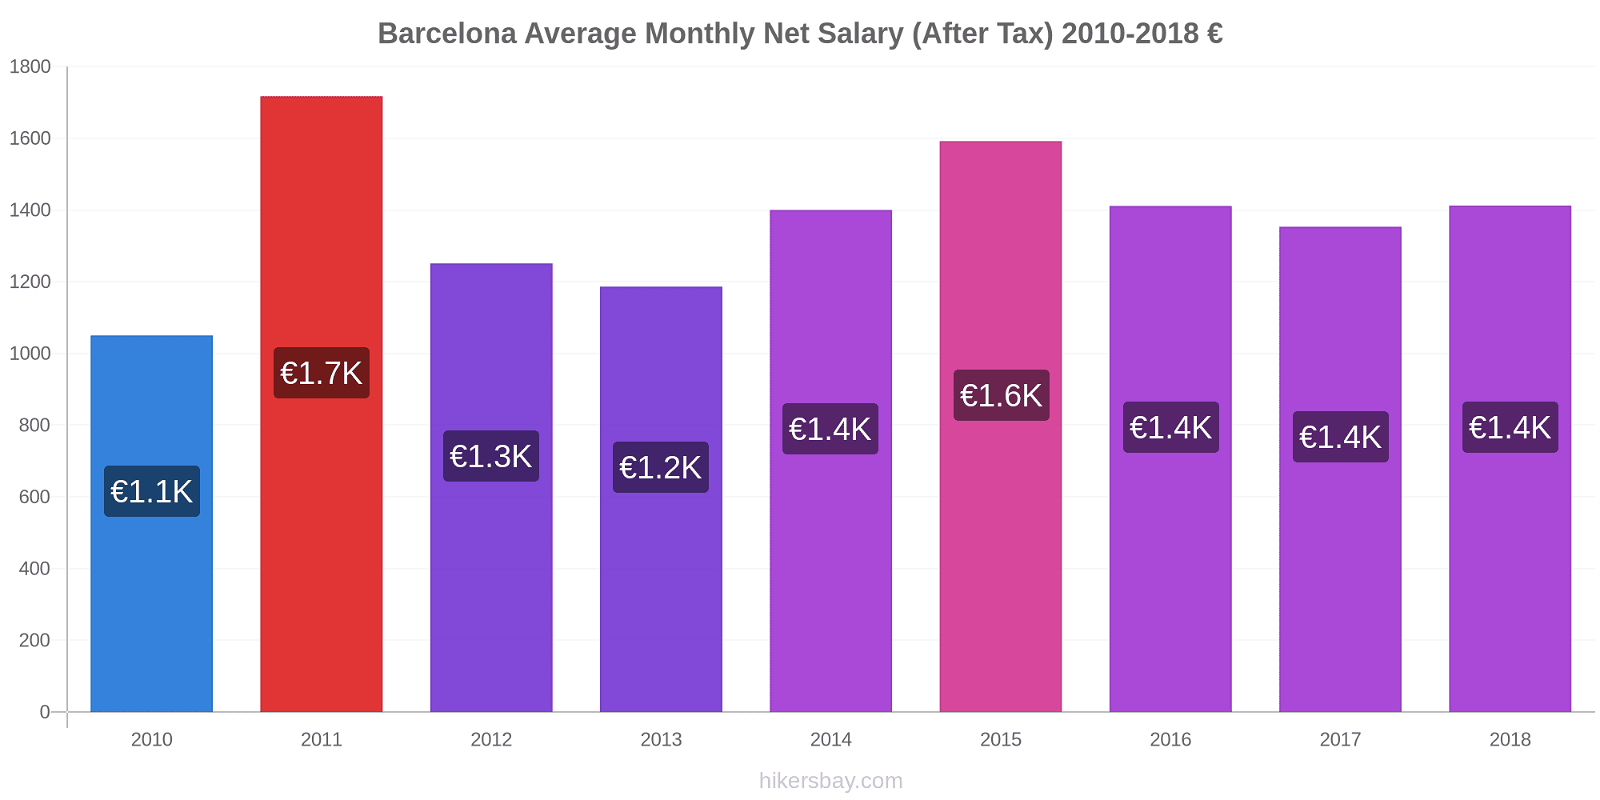 Barcelona price changes Average Monthly Net Salary (After Tax) hikersbay.com